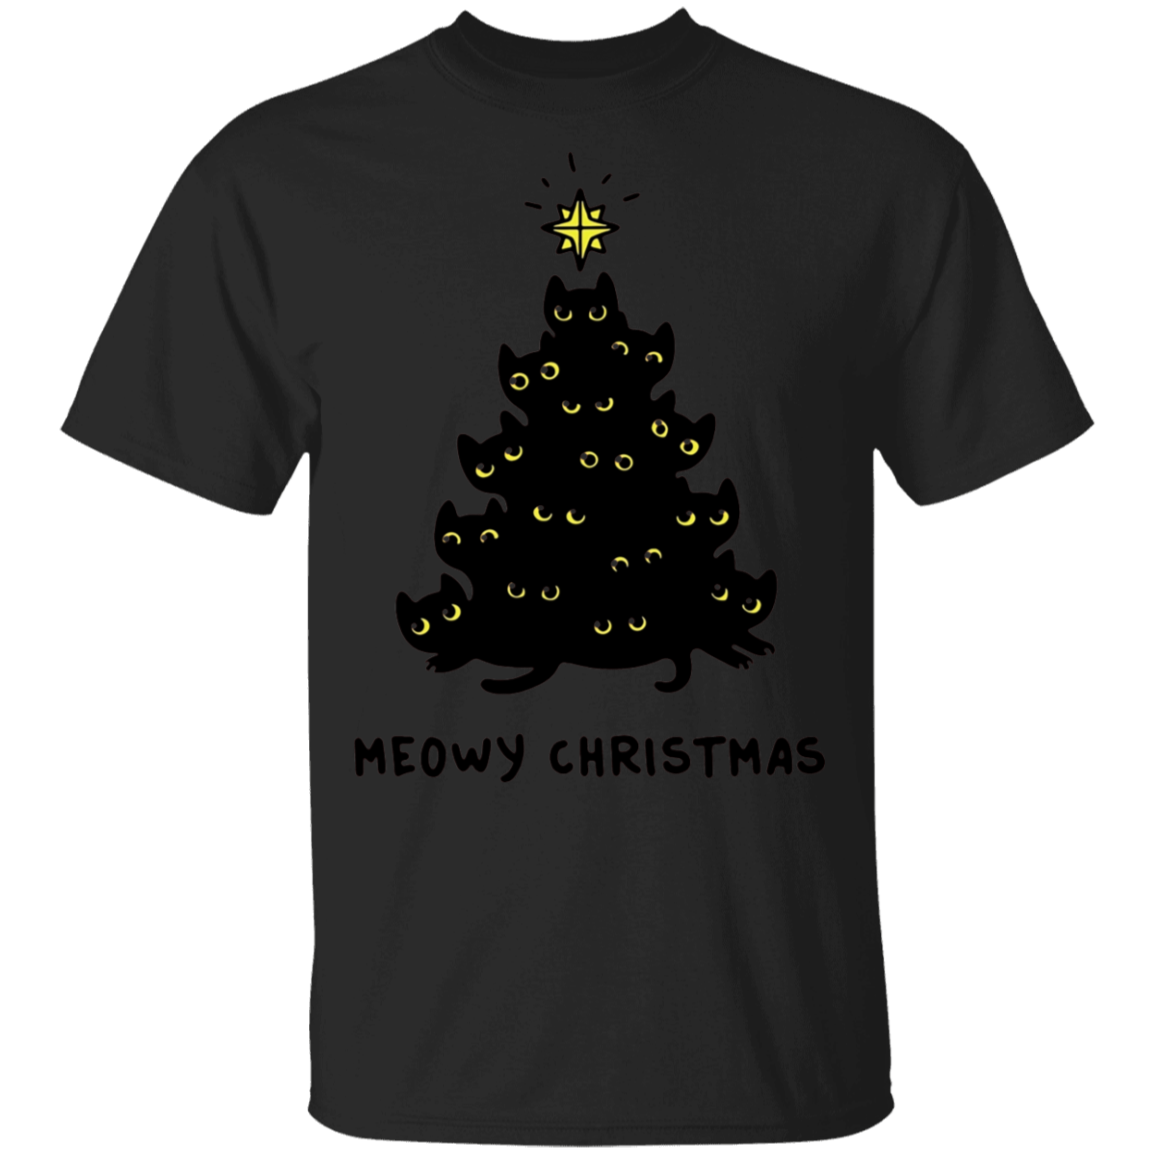 Kitten Tree Christmas T shirt Meowy Christmas Tee